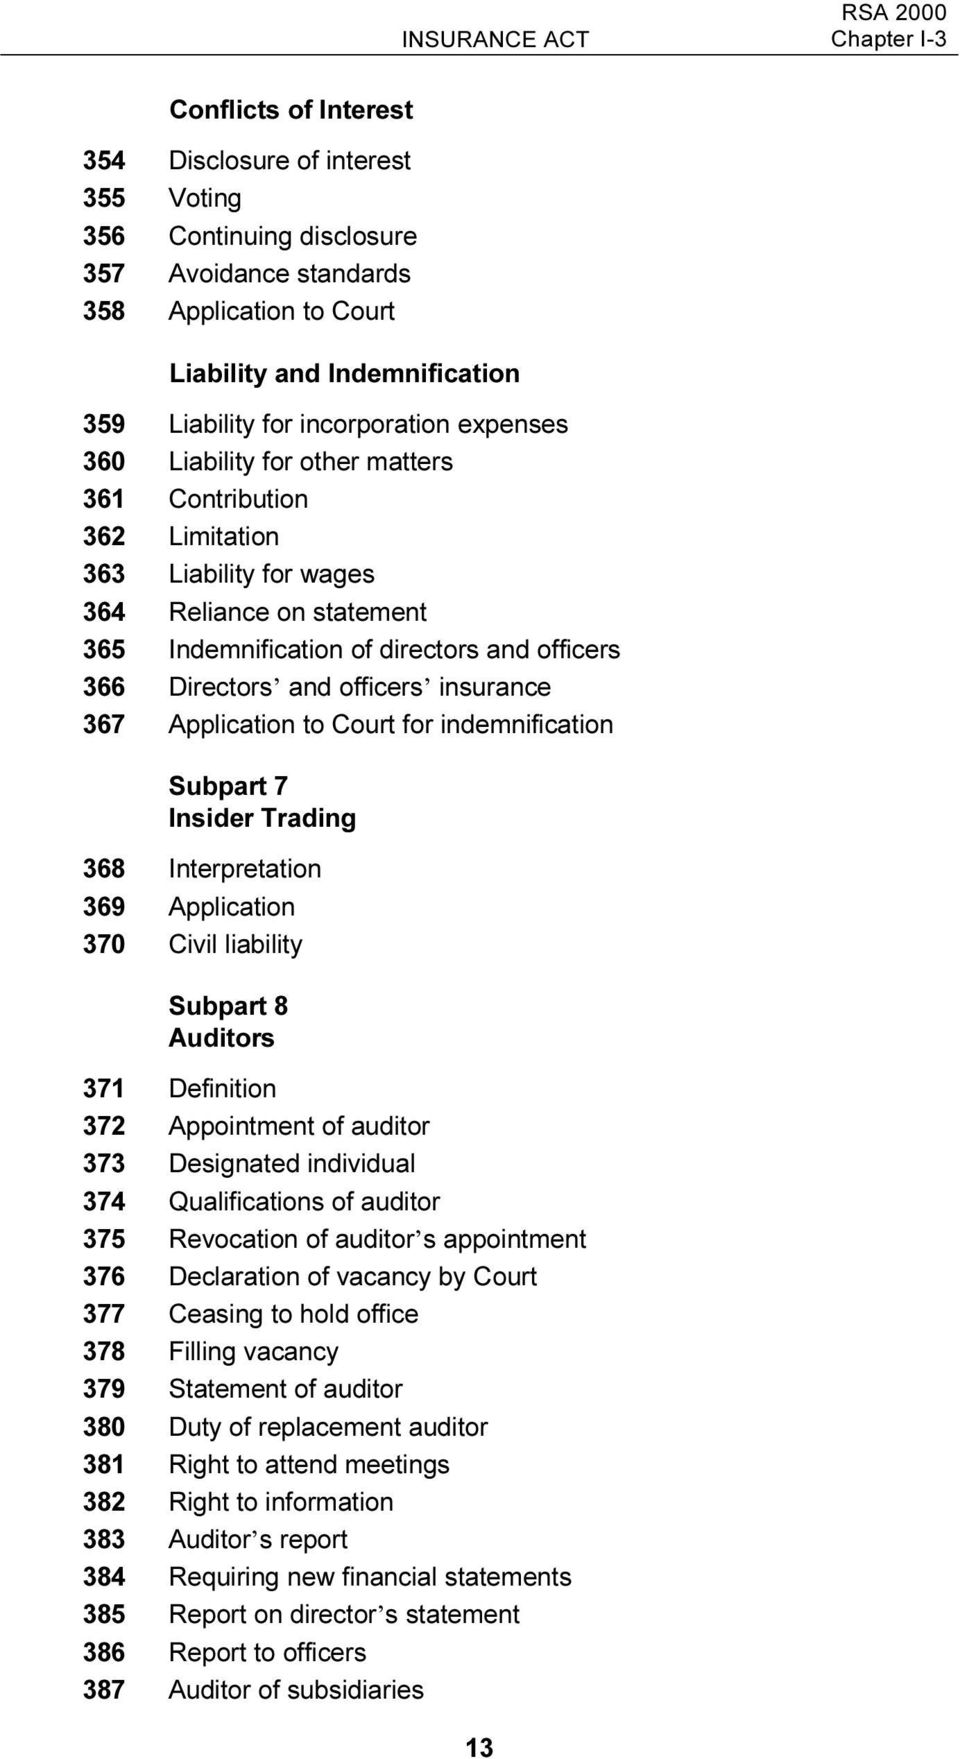 366 Directors and officers insurance 367 Application to Court for indemnification Subpart 7 Insider Trading 368 Interpretation 369 Application 370 Civil liability Subpart 8 Auditors 371 Definition